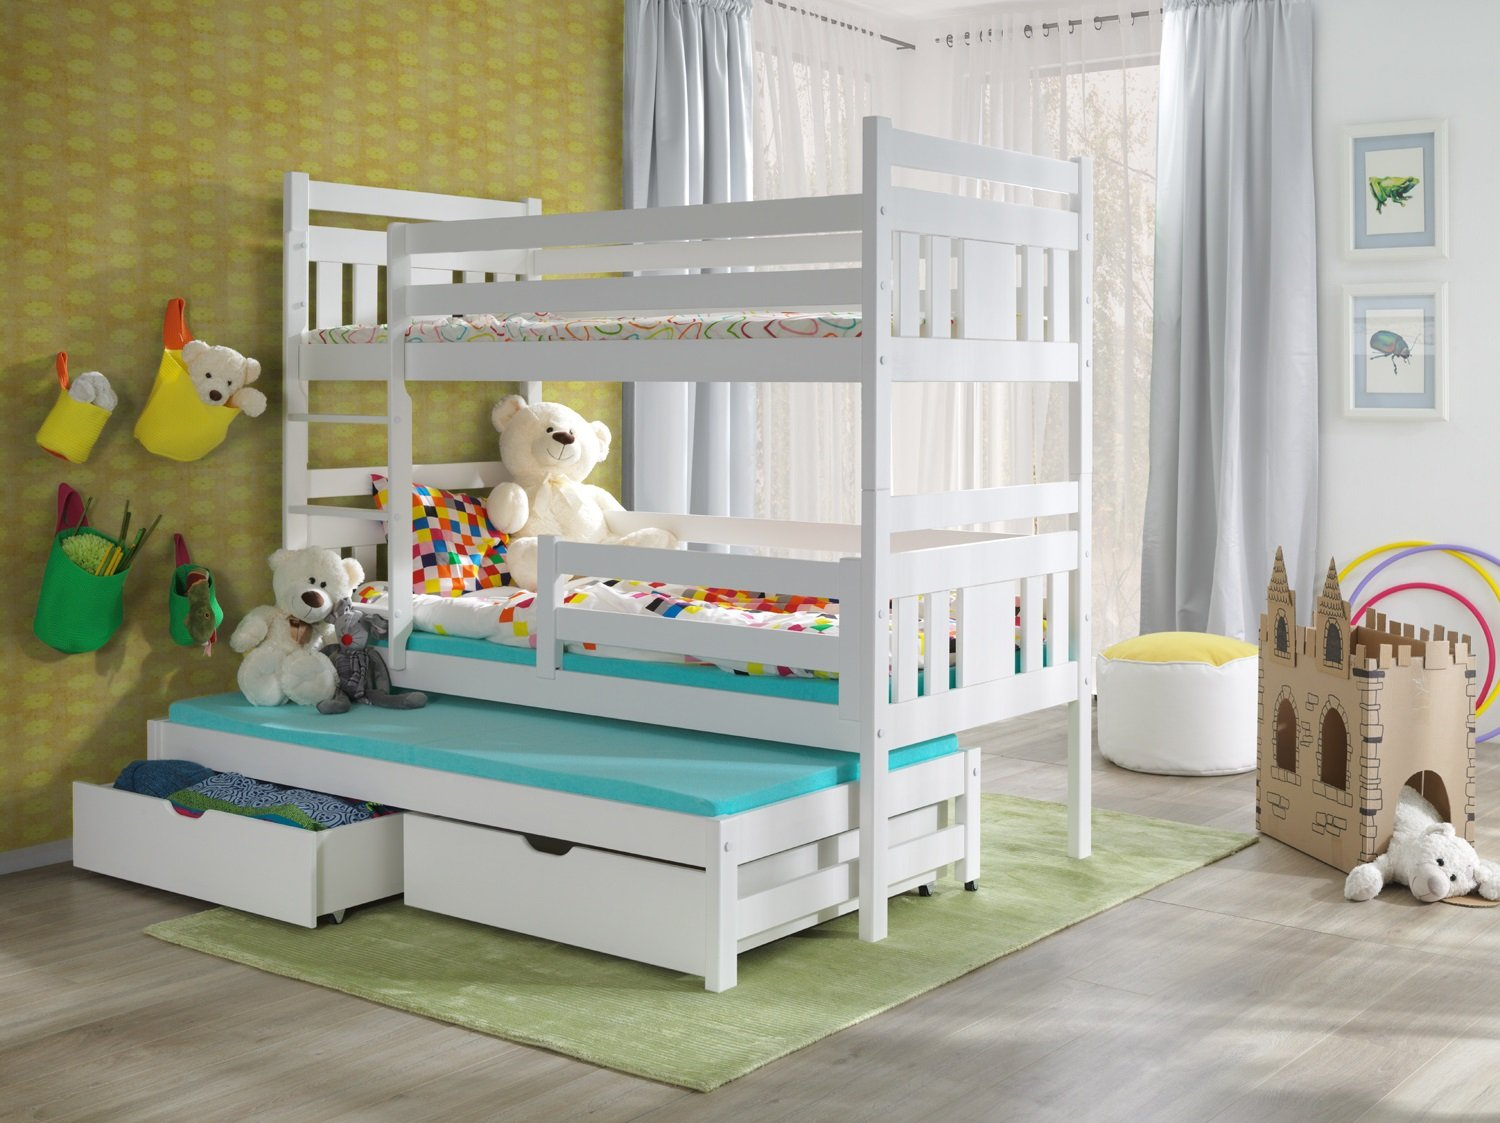 BUNK BEDS MEGGI 3FT WHITE WOODEN CHILDREN TRIPLE BUNK BEDS WITH MATTRESSES  AND STORAGE DRAWERS/ WHITE,PINE,BLUE,PINK COLOURS AVAILABLE: Amazon.co.uk:  ...